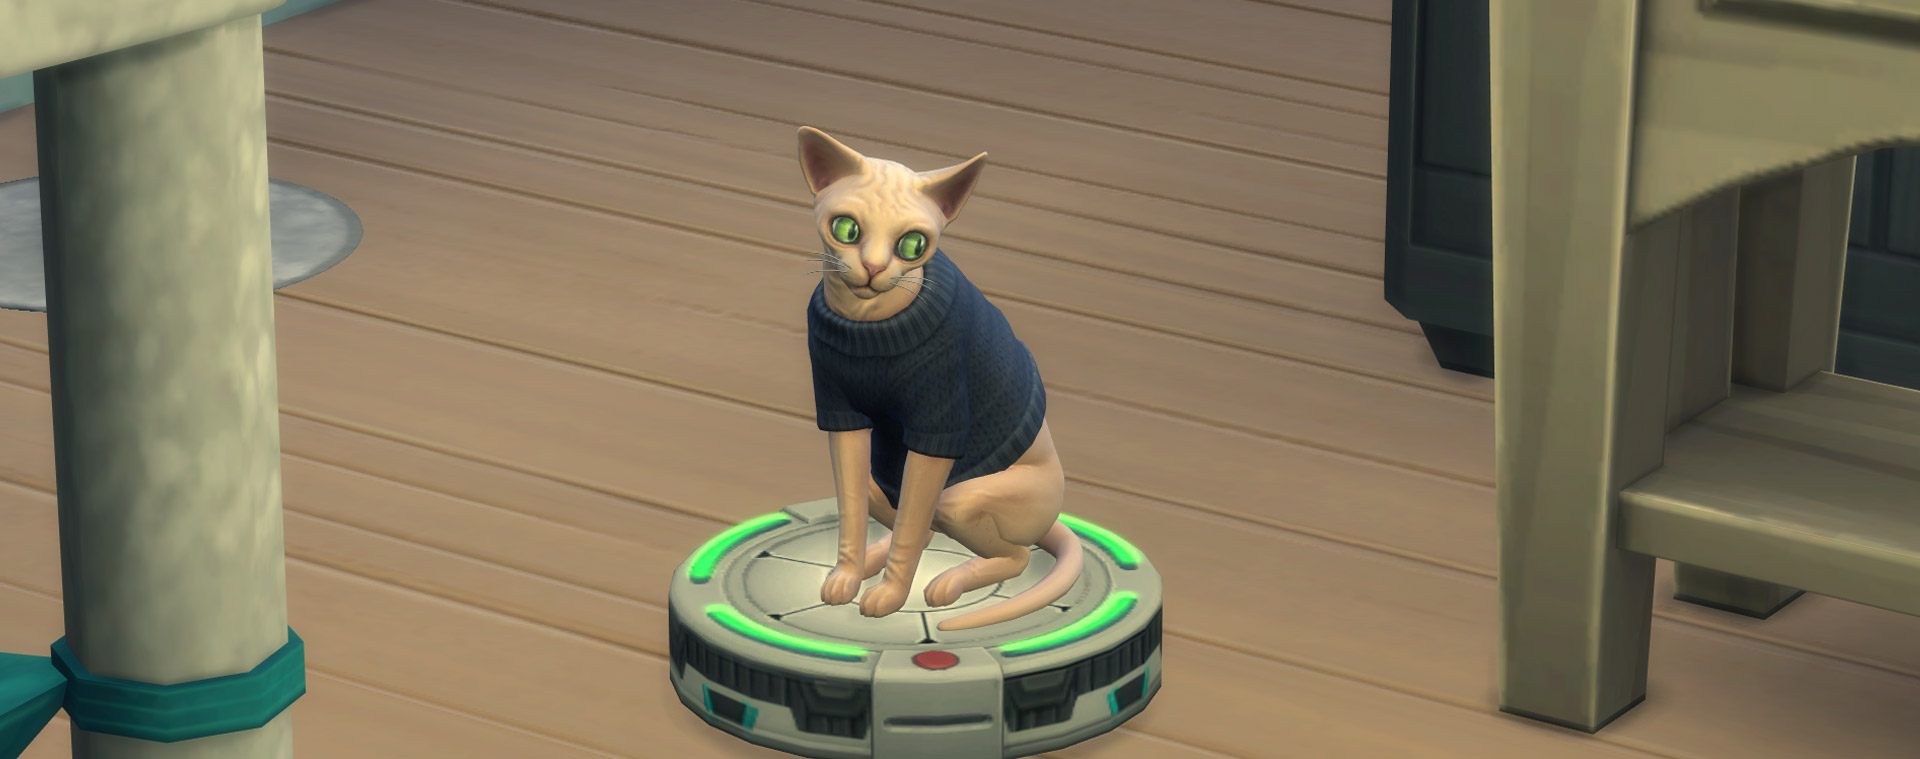 The Sims 4 Cats Dogs Cheats Sims Online